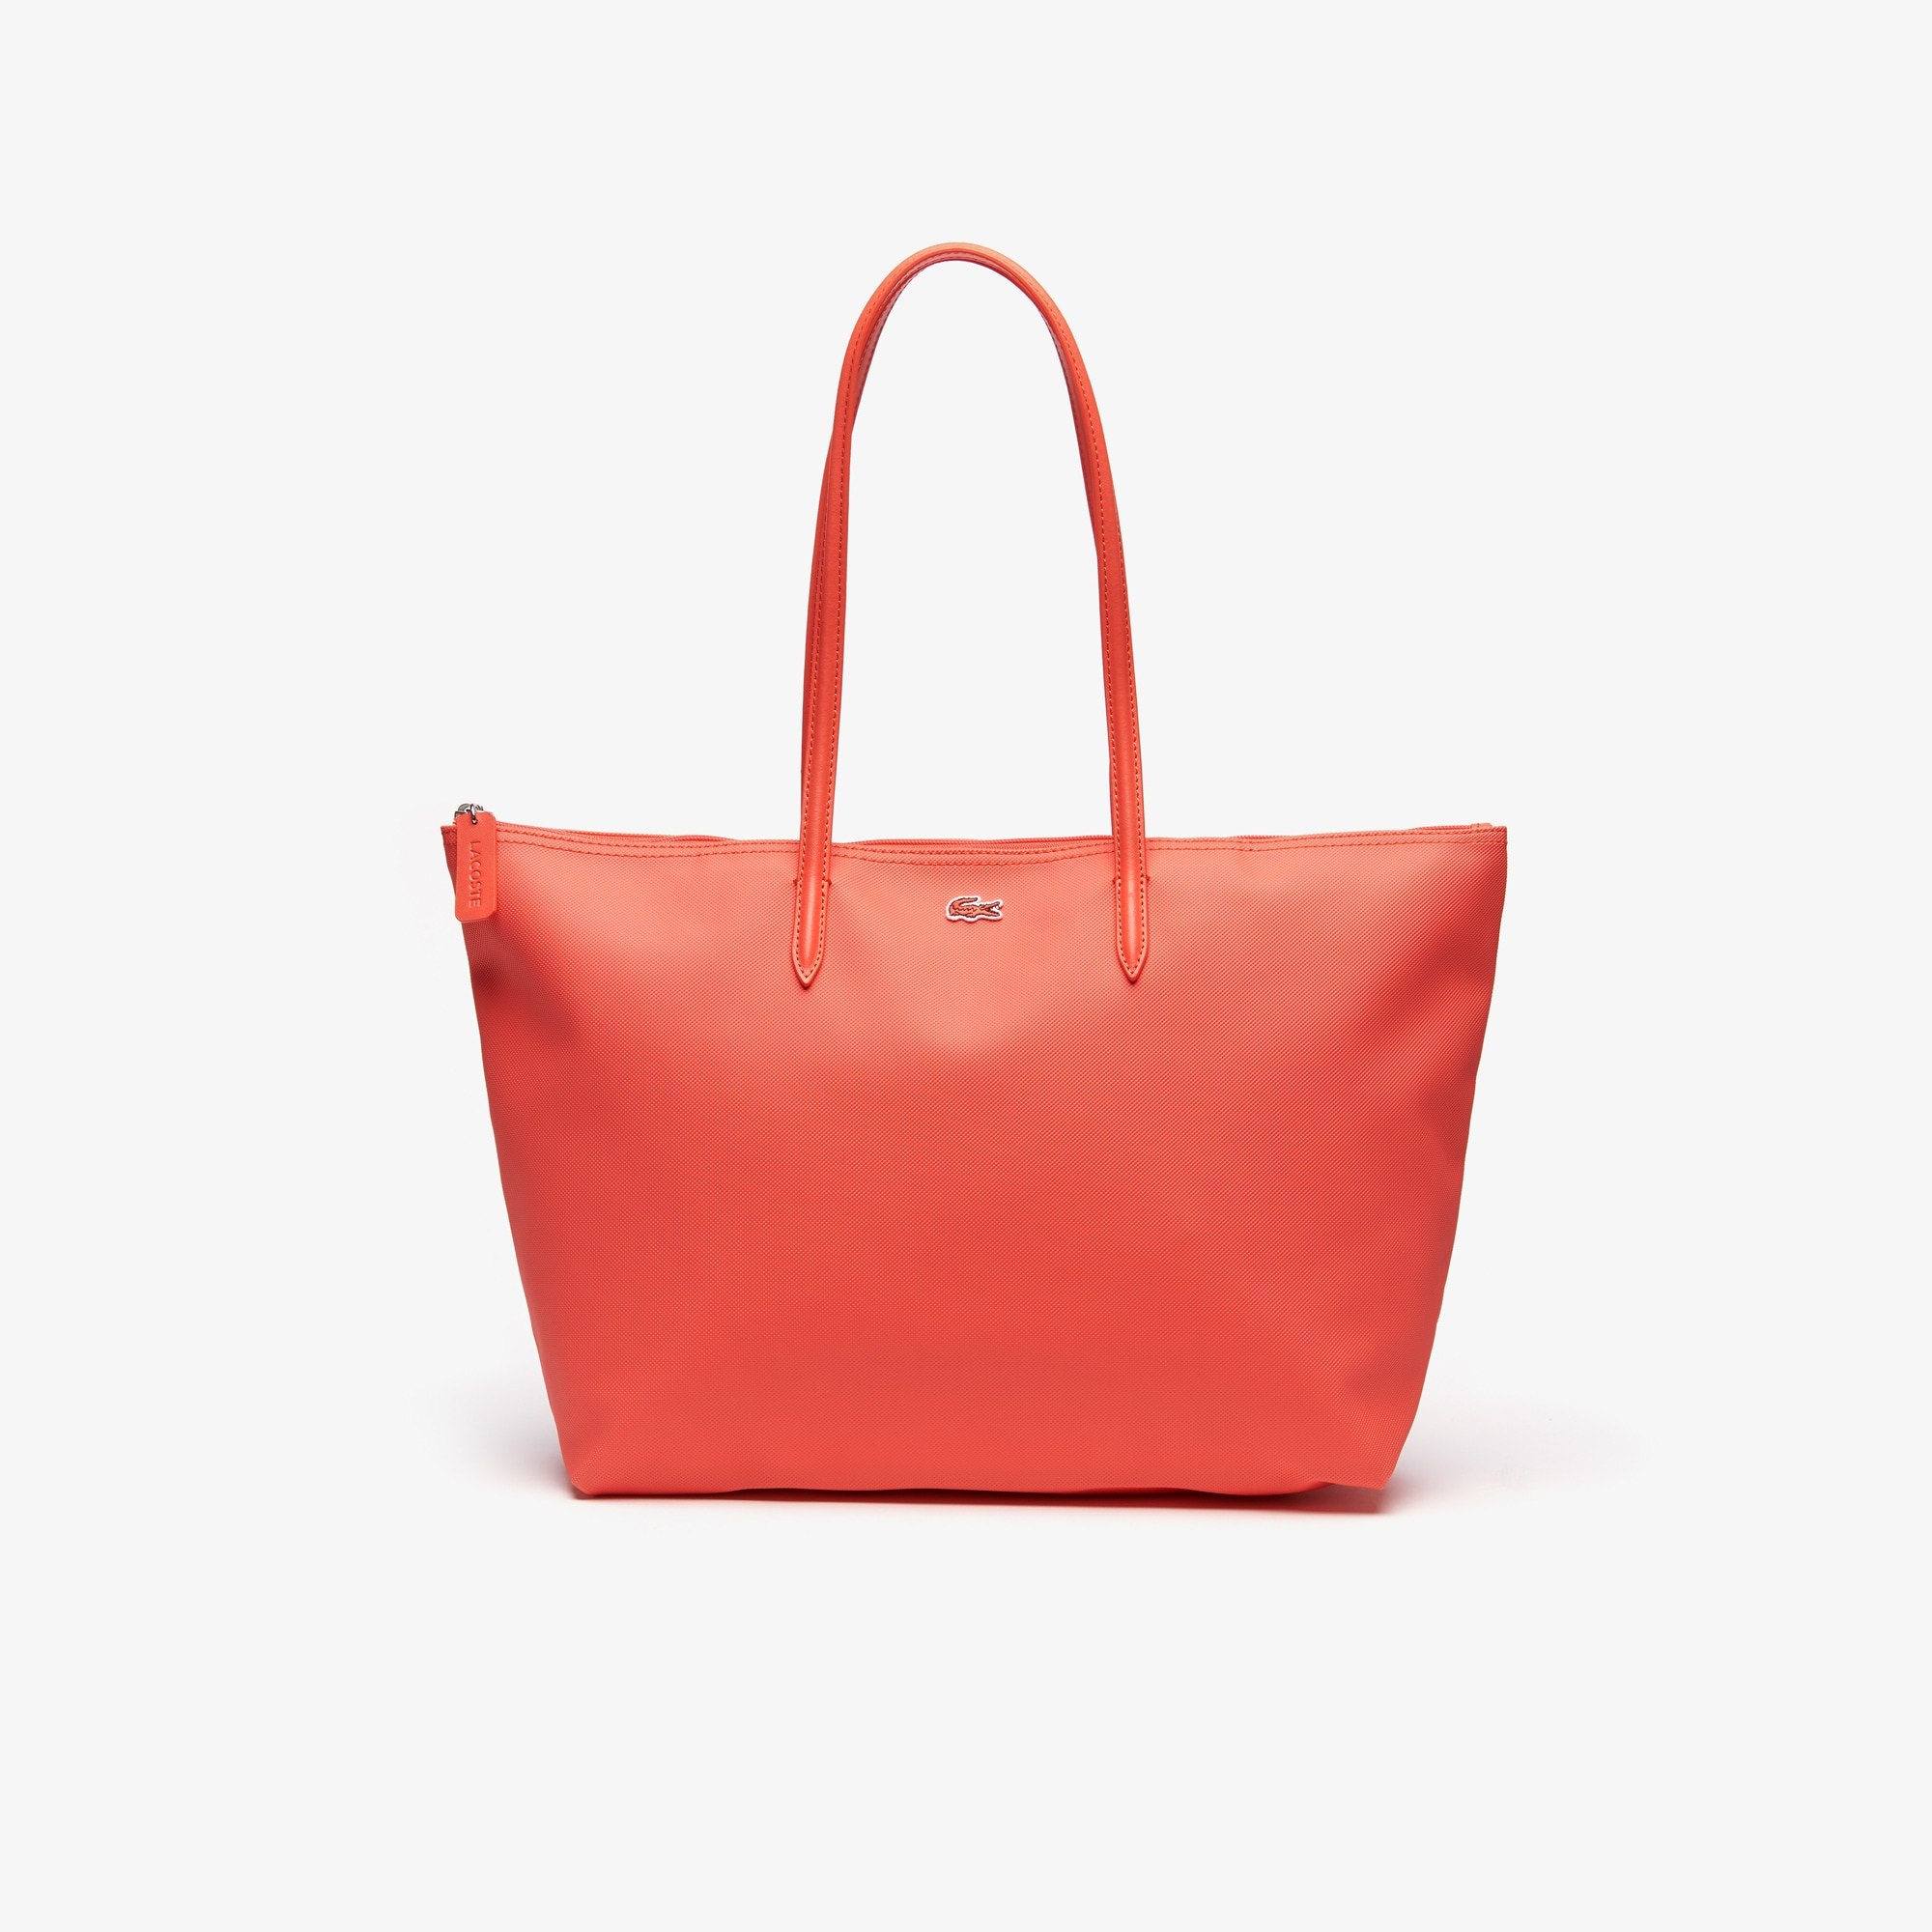 3877254e189 Bags & Handbags Collection | Women's Leather Goods | LACOSTE